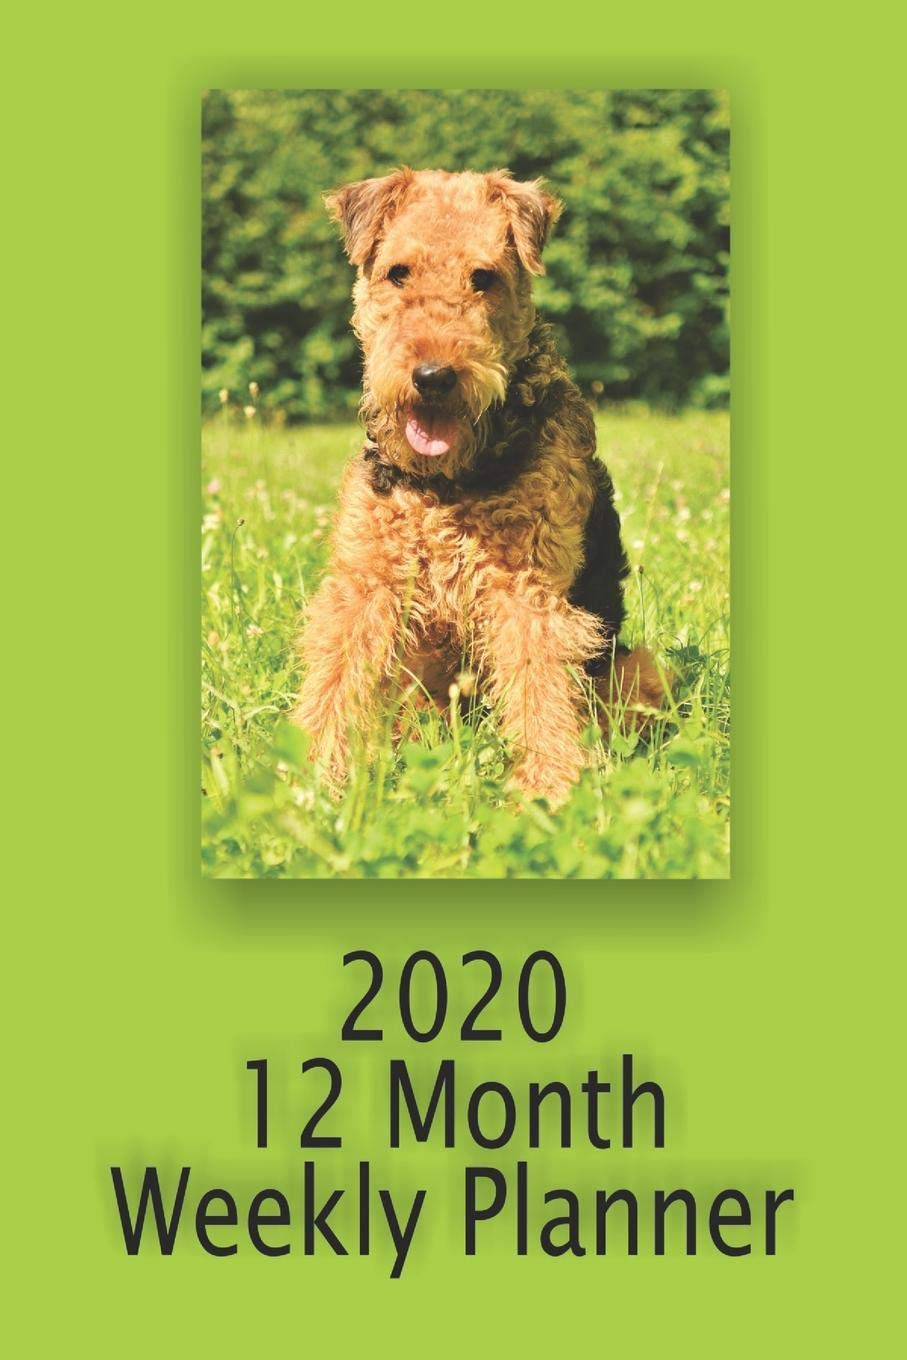 2020 12 Month Weekly Planner: 1 Year Daily/Weekly/Monthly Planner, January 1,2020-December 31, 2020, Airedale Terrier…